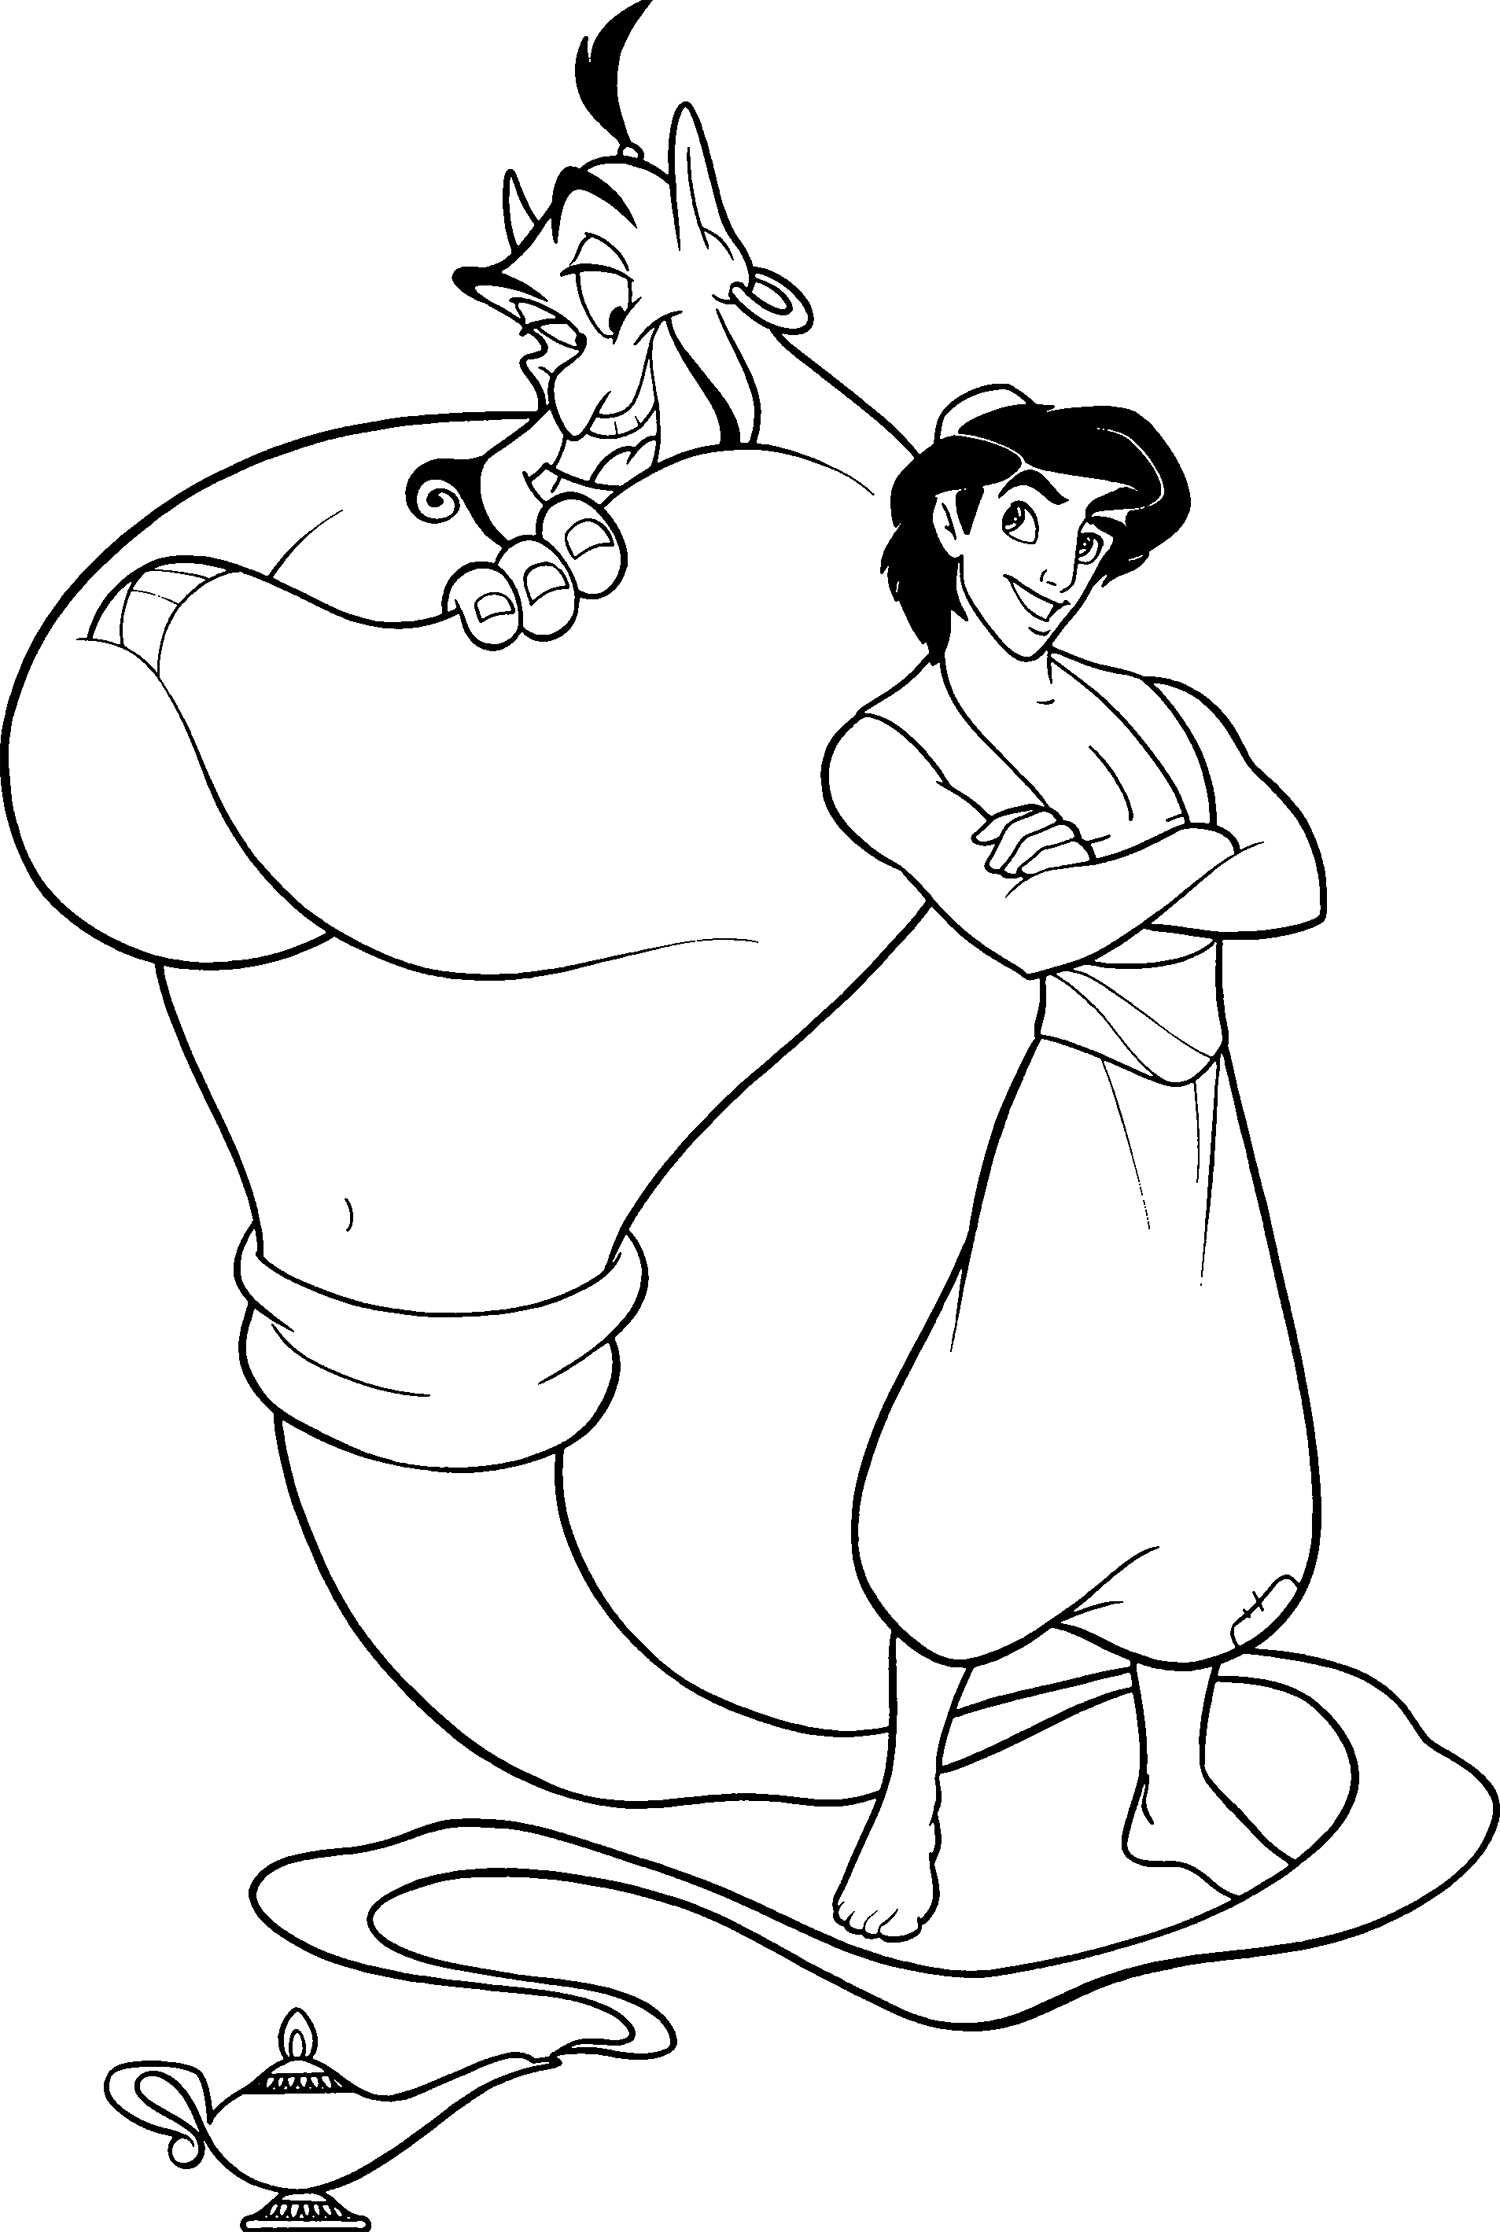 genie magic coloring pages | Magical world of Arabian Aladdin 18 Aladdin coloring pages ...